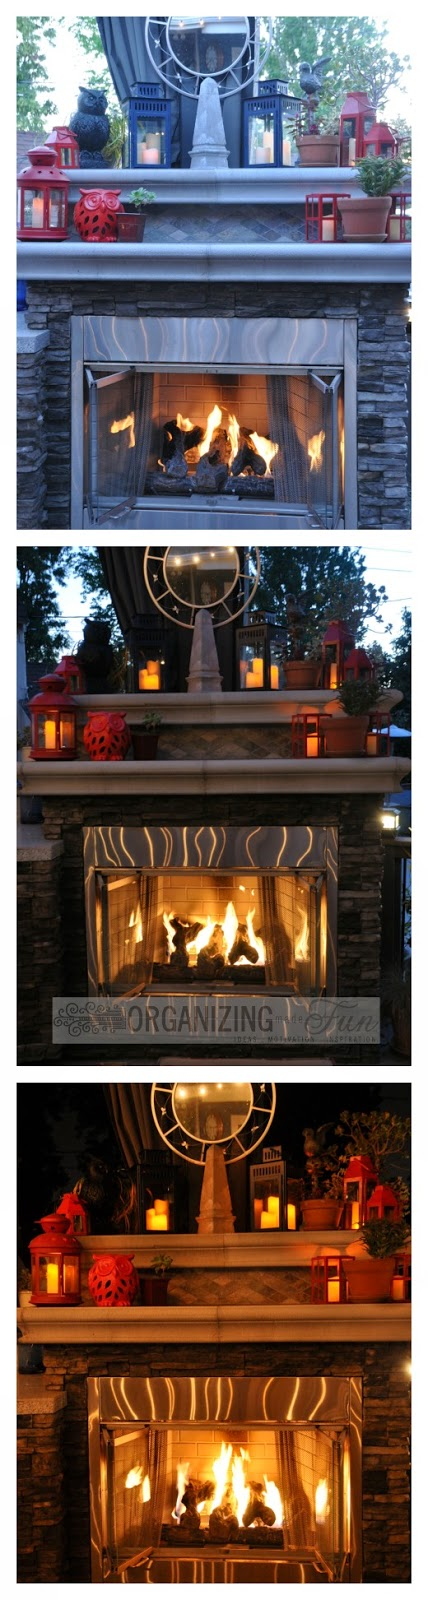 Outdoor Fireplace :: OrganizingMadeFun.com